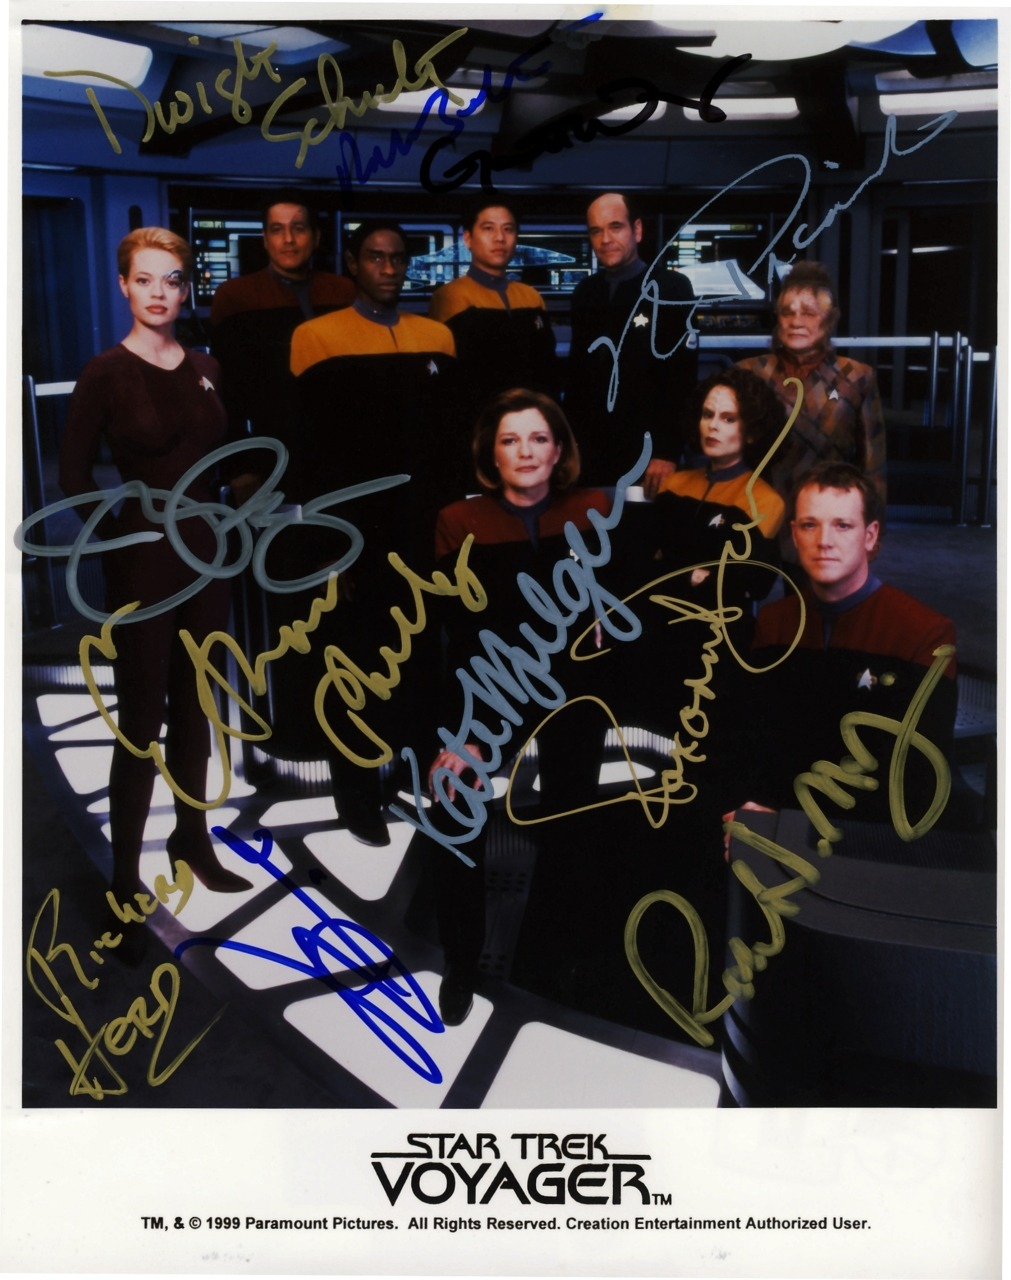 Completed (+2) Season 6 Cast Photo from Star Trek: Voyager. I started this cast photo in March of 2000, when I met Tim Russ and Garrett Wang.  The photo was at that time brand new, from that current in-progress season.  I then met Robbie McNeill, Roxann Dawson, Bob Picardo and Ethan Phillips that summer (2000).  Kate Mulgrew the following summer (2001), right after Voyager had ended.  Robert Beltran in 2005 (or was it 2006?) - which is also when I got Dwight Schultz (Reg Barclay) to sign it.  I do that.  I get repeat guest actors to sign my cast photos, because… I just do, lol.  I forget exactly when I got Richard Herd (Admiral Paris) to do likewise; but he signed it for free.  I think he liked the idea of being included.  :)  Finally, the summer of 2010 saw Jeri Ryan make a rare convention appearance.  Even rarer was that it was in my neck of the woods, the East Coast.  Jennifer Lien was also going to be there, but cancelled at the last moment. A 10 Year Journey to Completion. I still have a season 3 photo, which features Kes, that is in need of her signature only to be complete.  I have no guest stars on that one, but if I ever saw Martha Hackett (Seska) I would get her to sign such. ((Like This?  Check Out My Archive and Follow Me!))